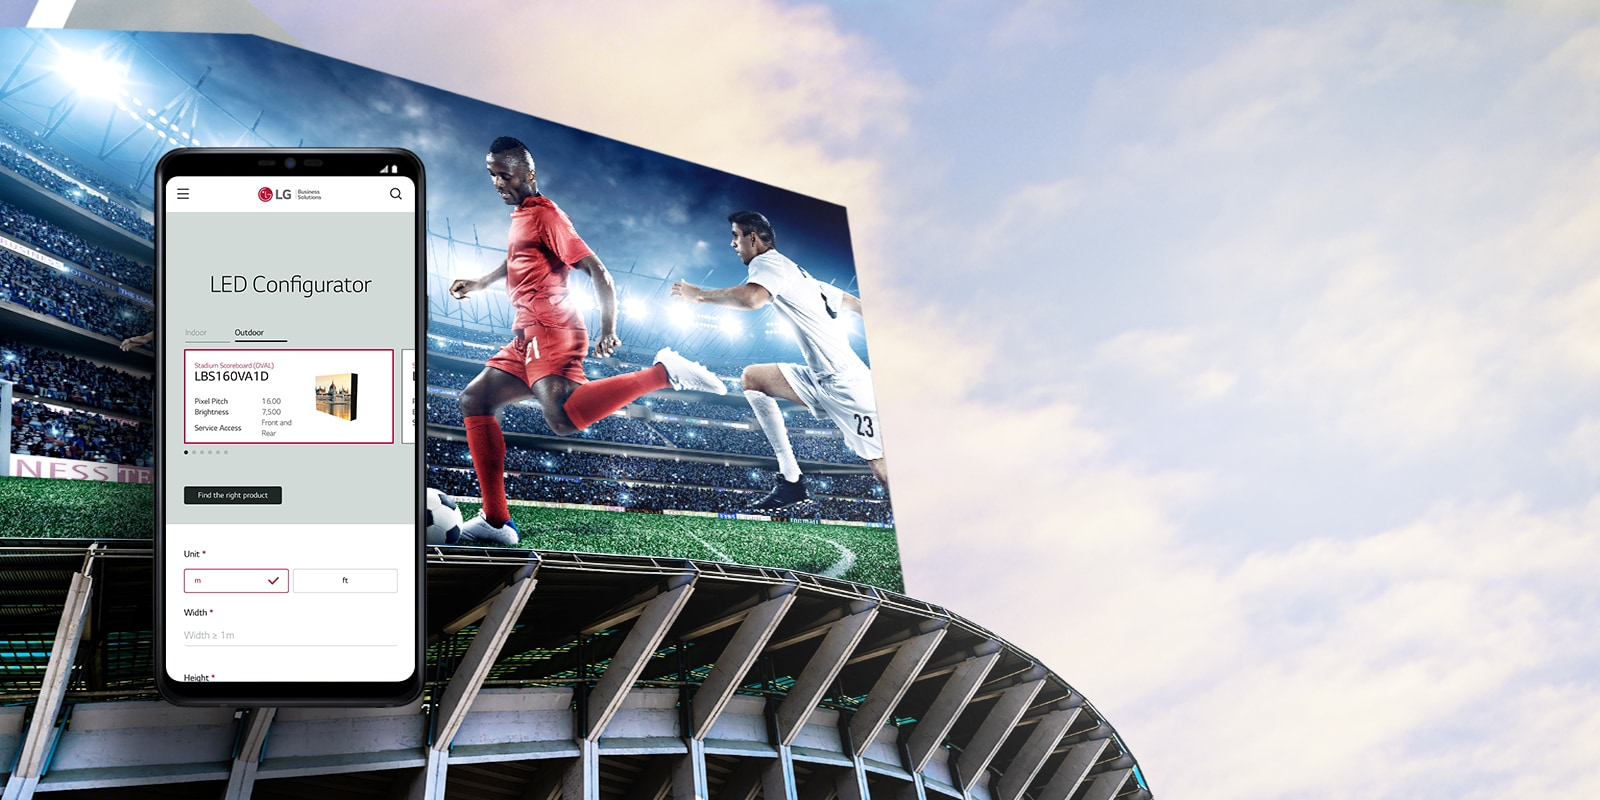 LED Signage | Products | Information Display | Business | LG Global